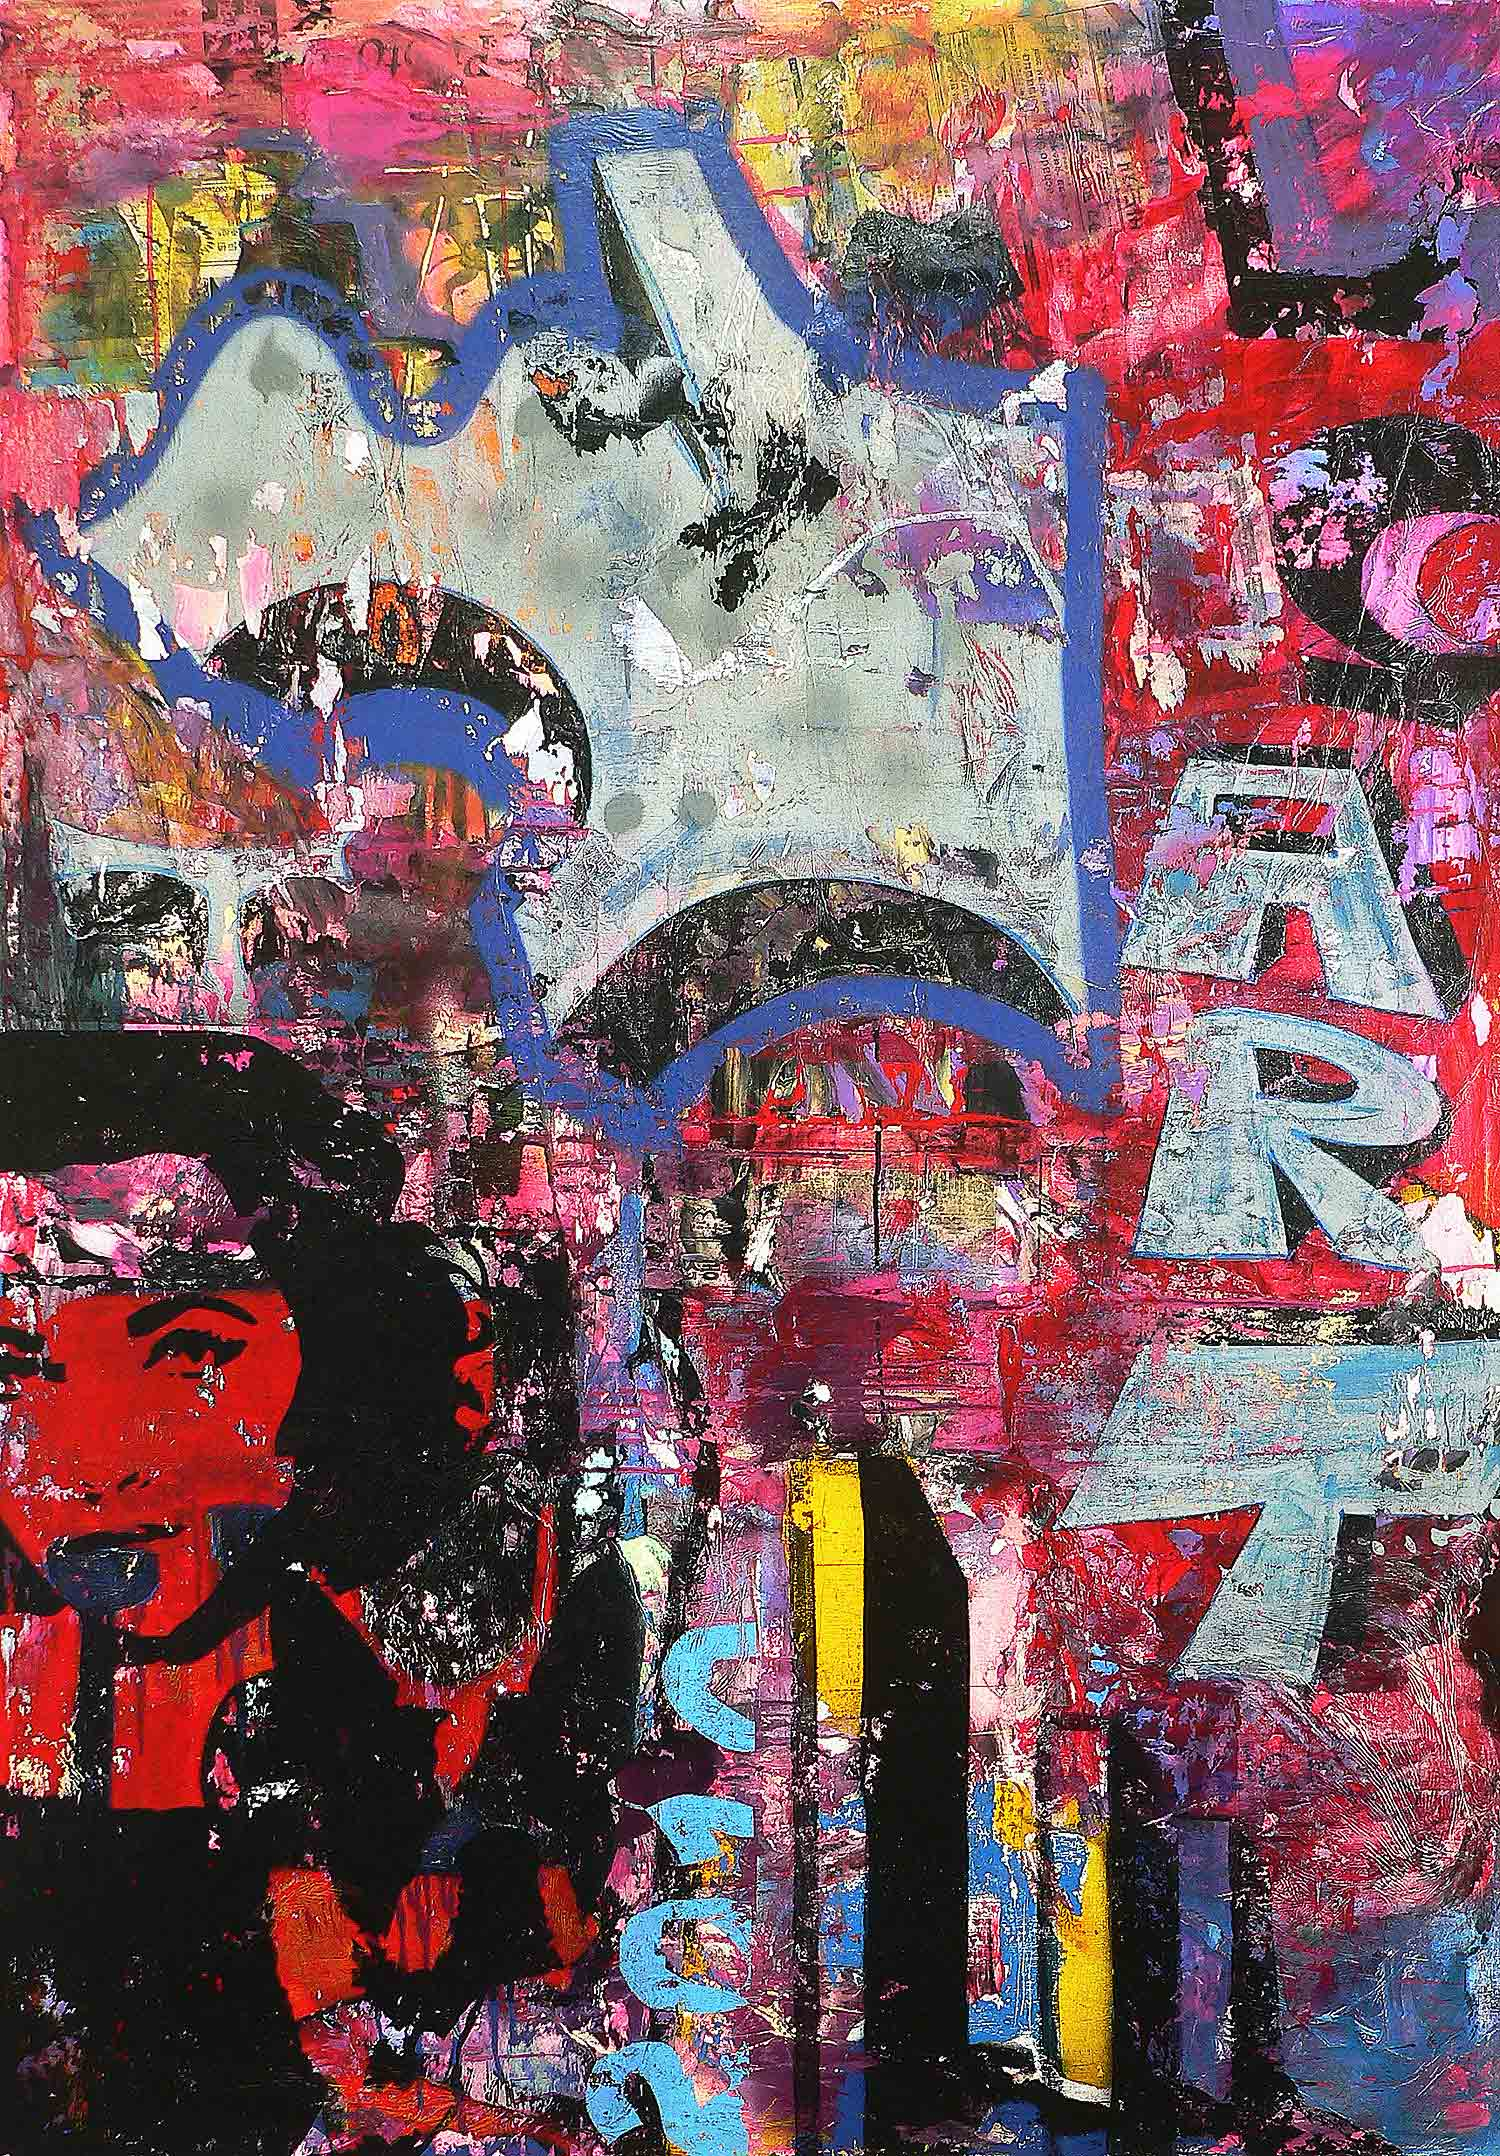 art - 170 x 120 cm - acrylic, spray paint, markers and collage on canvas - 2010